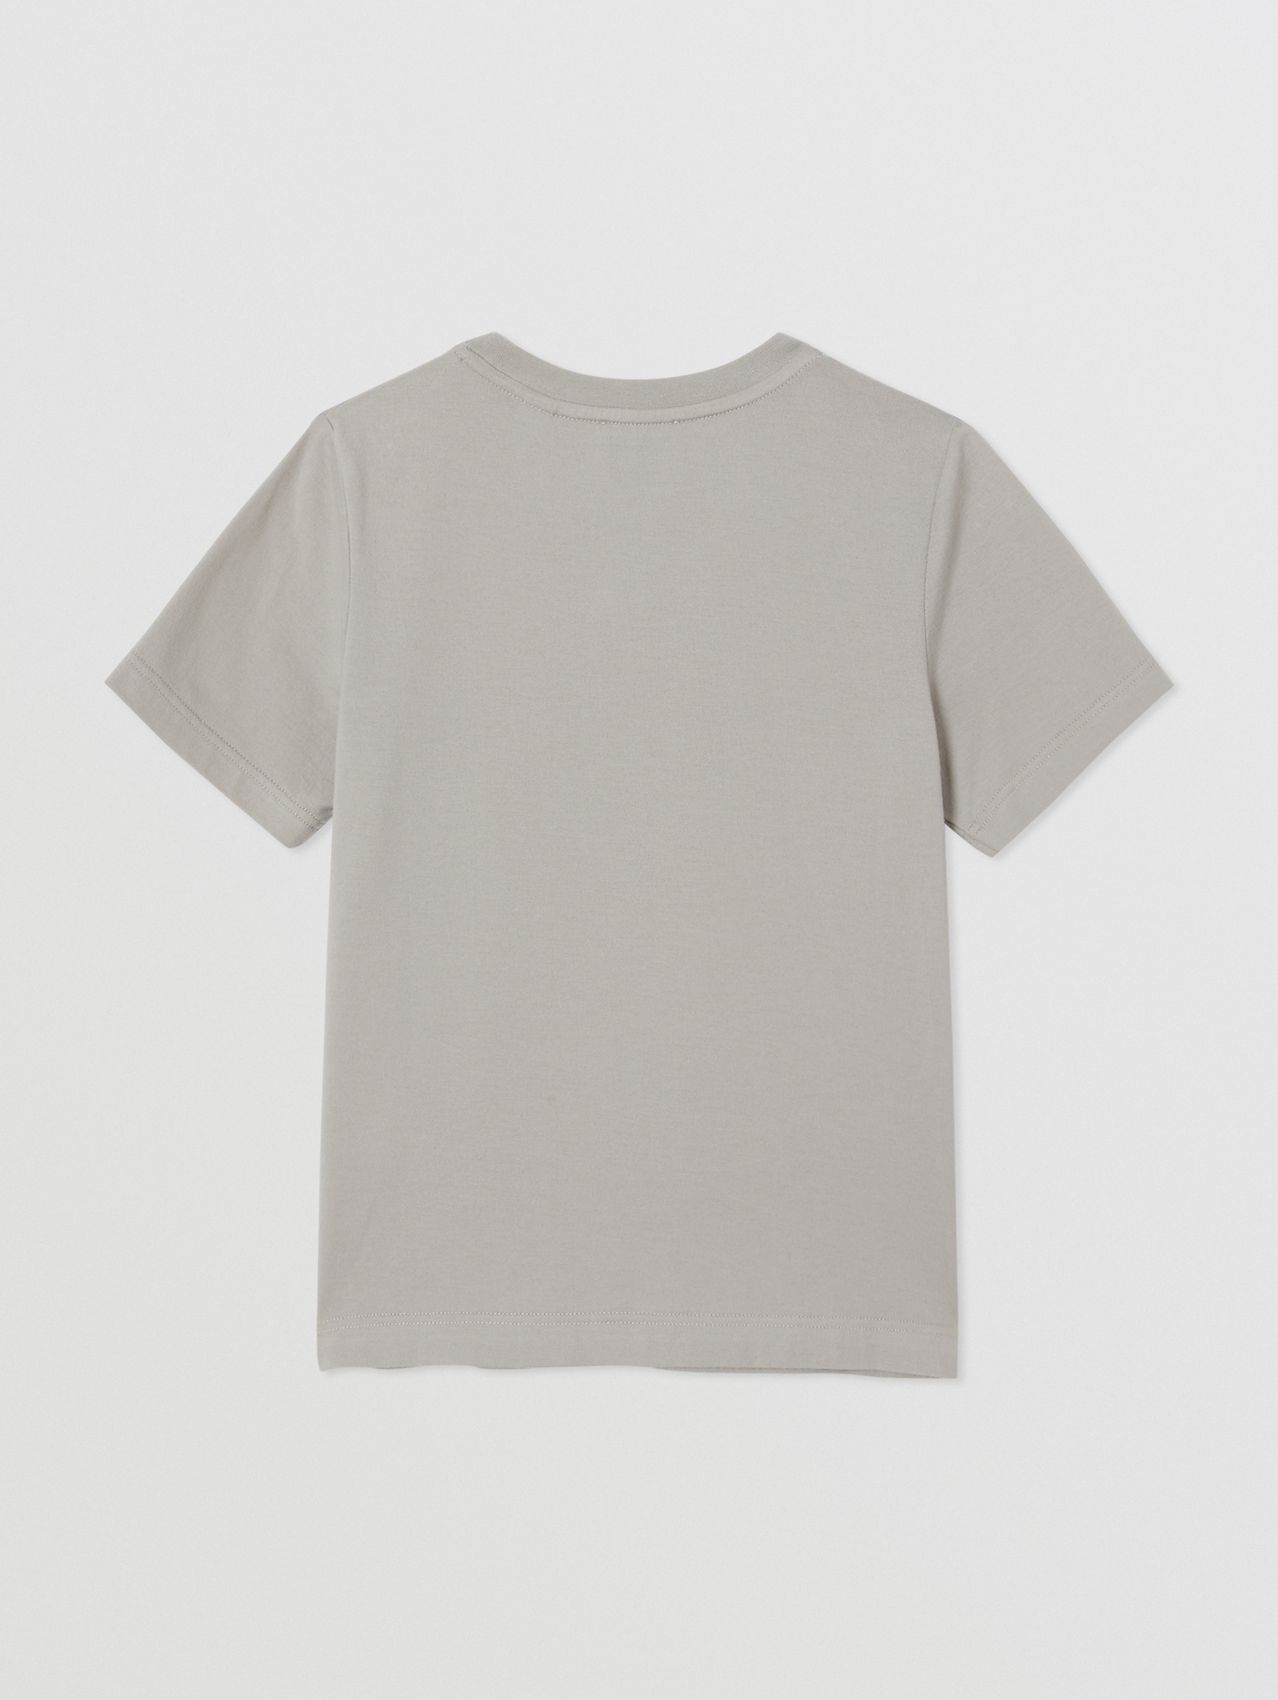 Montage Print Cotton T-shirt in Grey